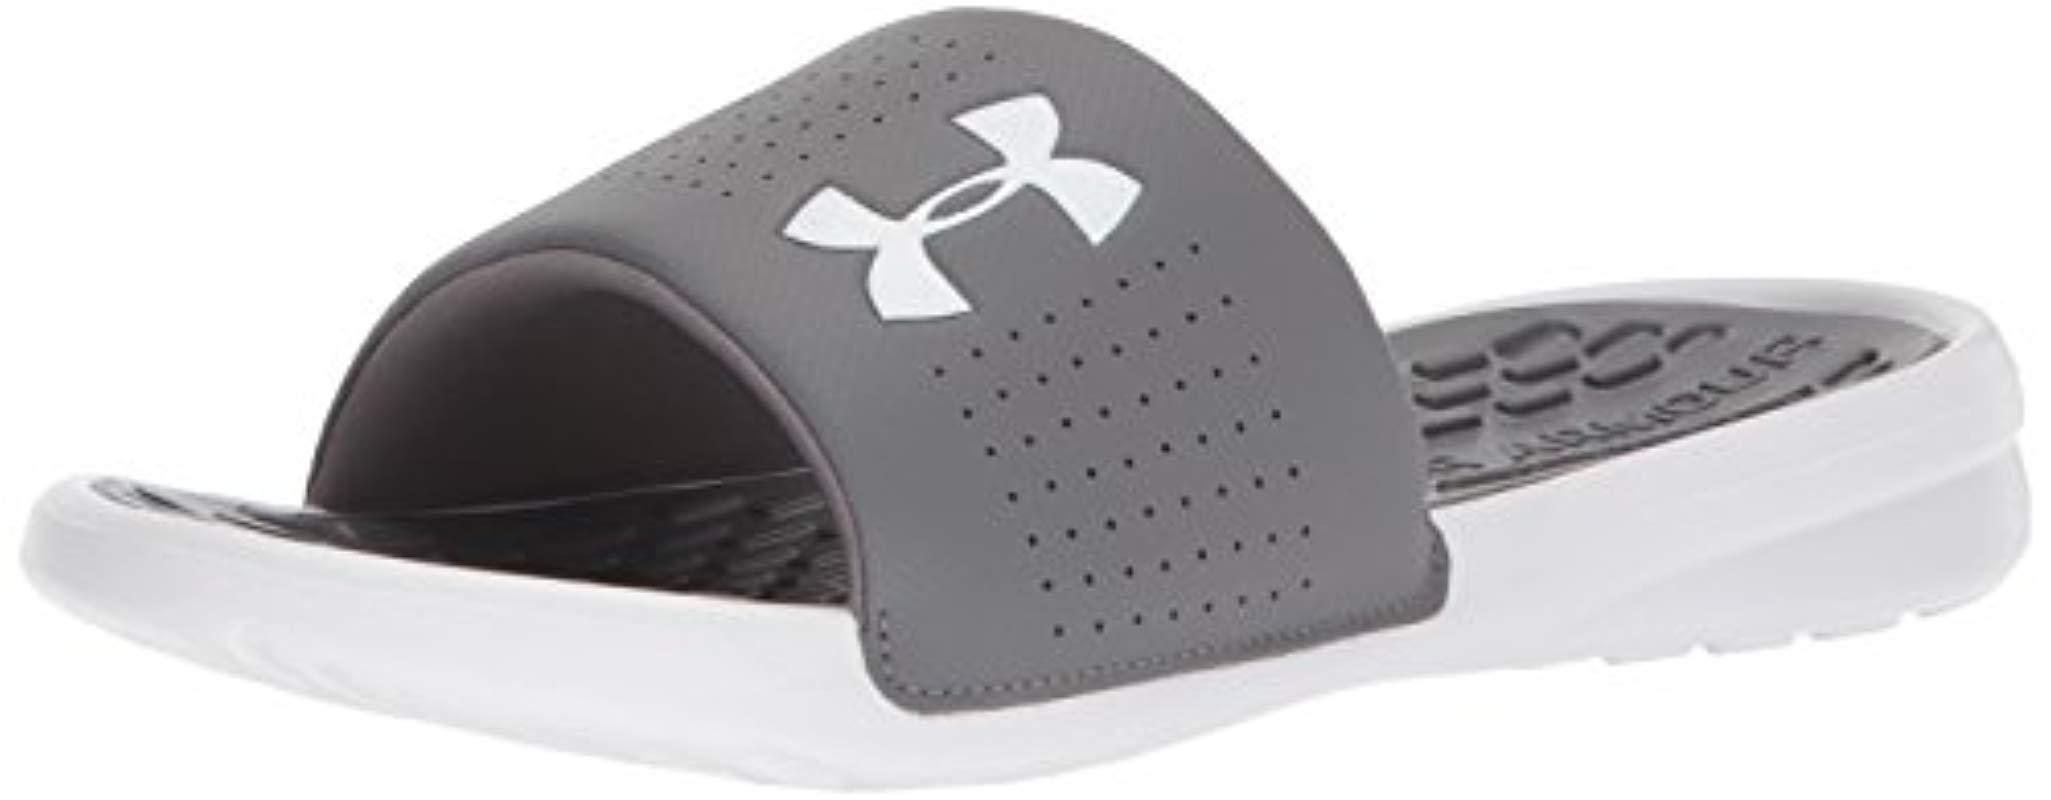 bddc5ddb7ce Lyst - Under Armour Playmaker Fix Sl Slide Sandal in Gray for Men ...